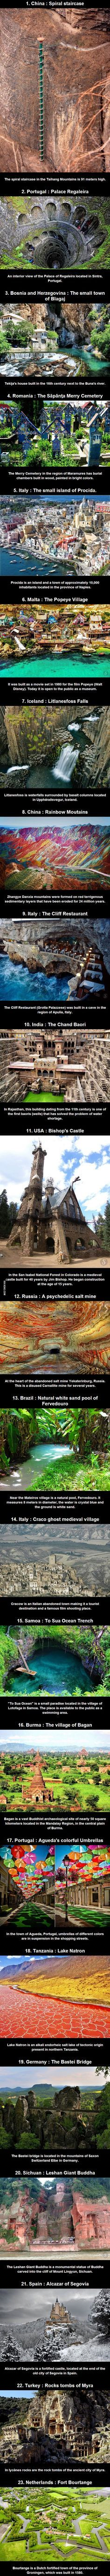 23 places to visit before dying   Some of these places are pretty cool